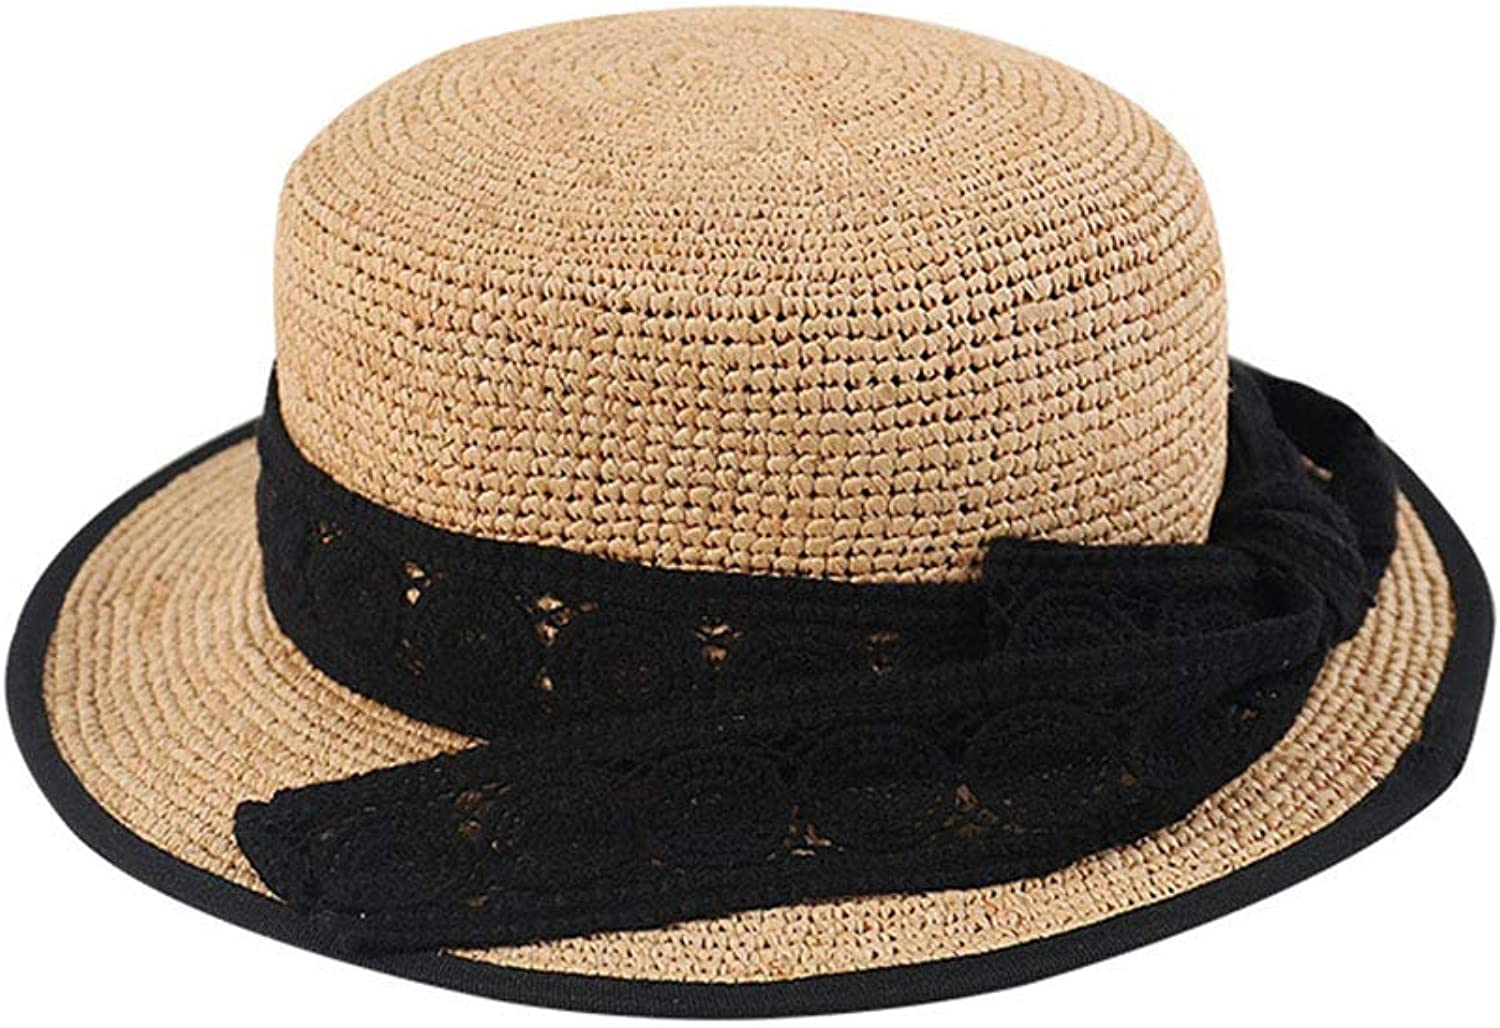 59dc8de26e7c6e Lace Bow Straw Hat, 2019 Summer Outdoor Beach Hat, Sun UV Visor Big Hat,  Outdoor Sports Leisure Shopping Vacation Women's Predection  ntcznn2707-Sporting ...